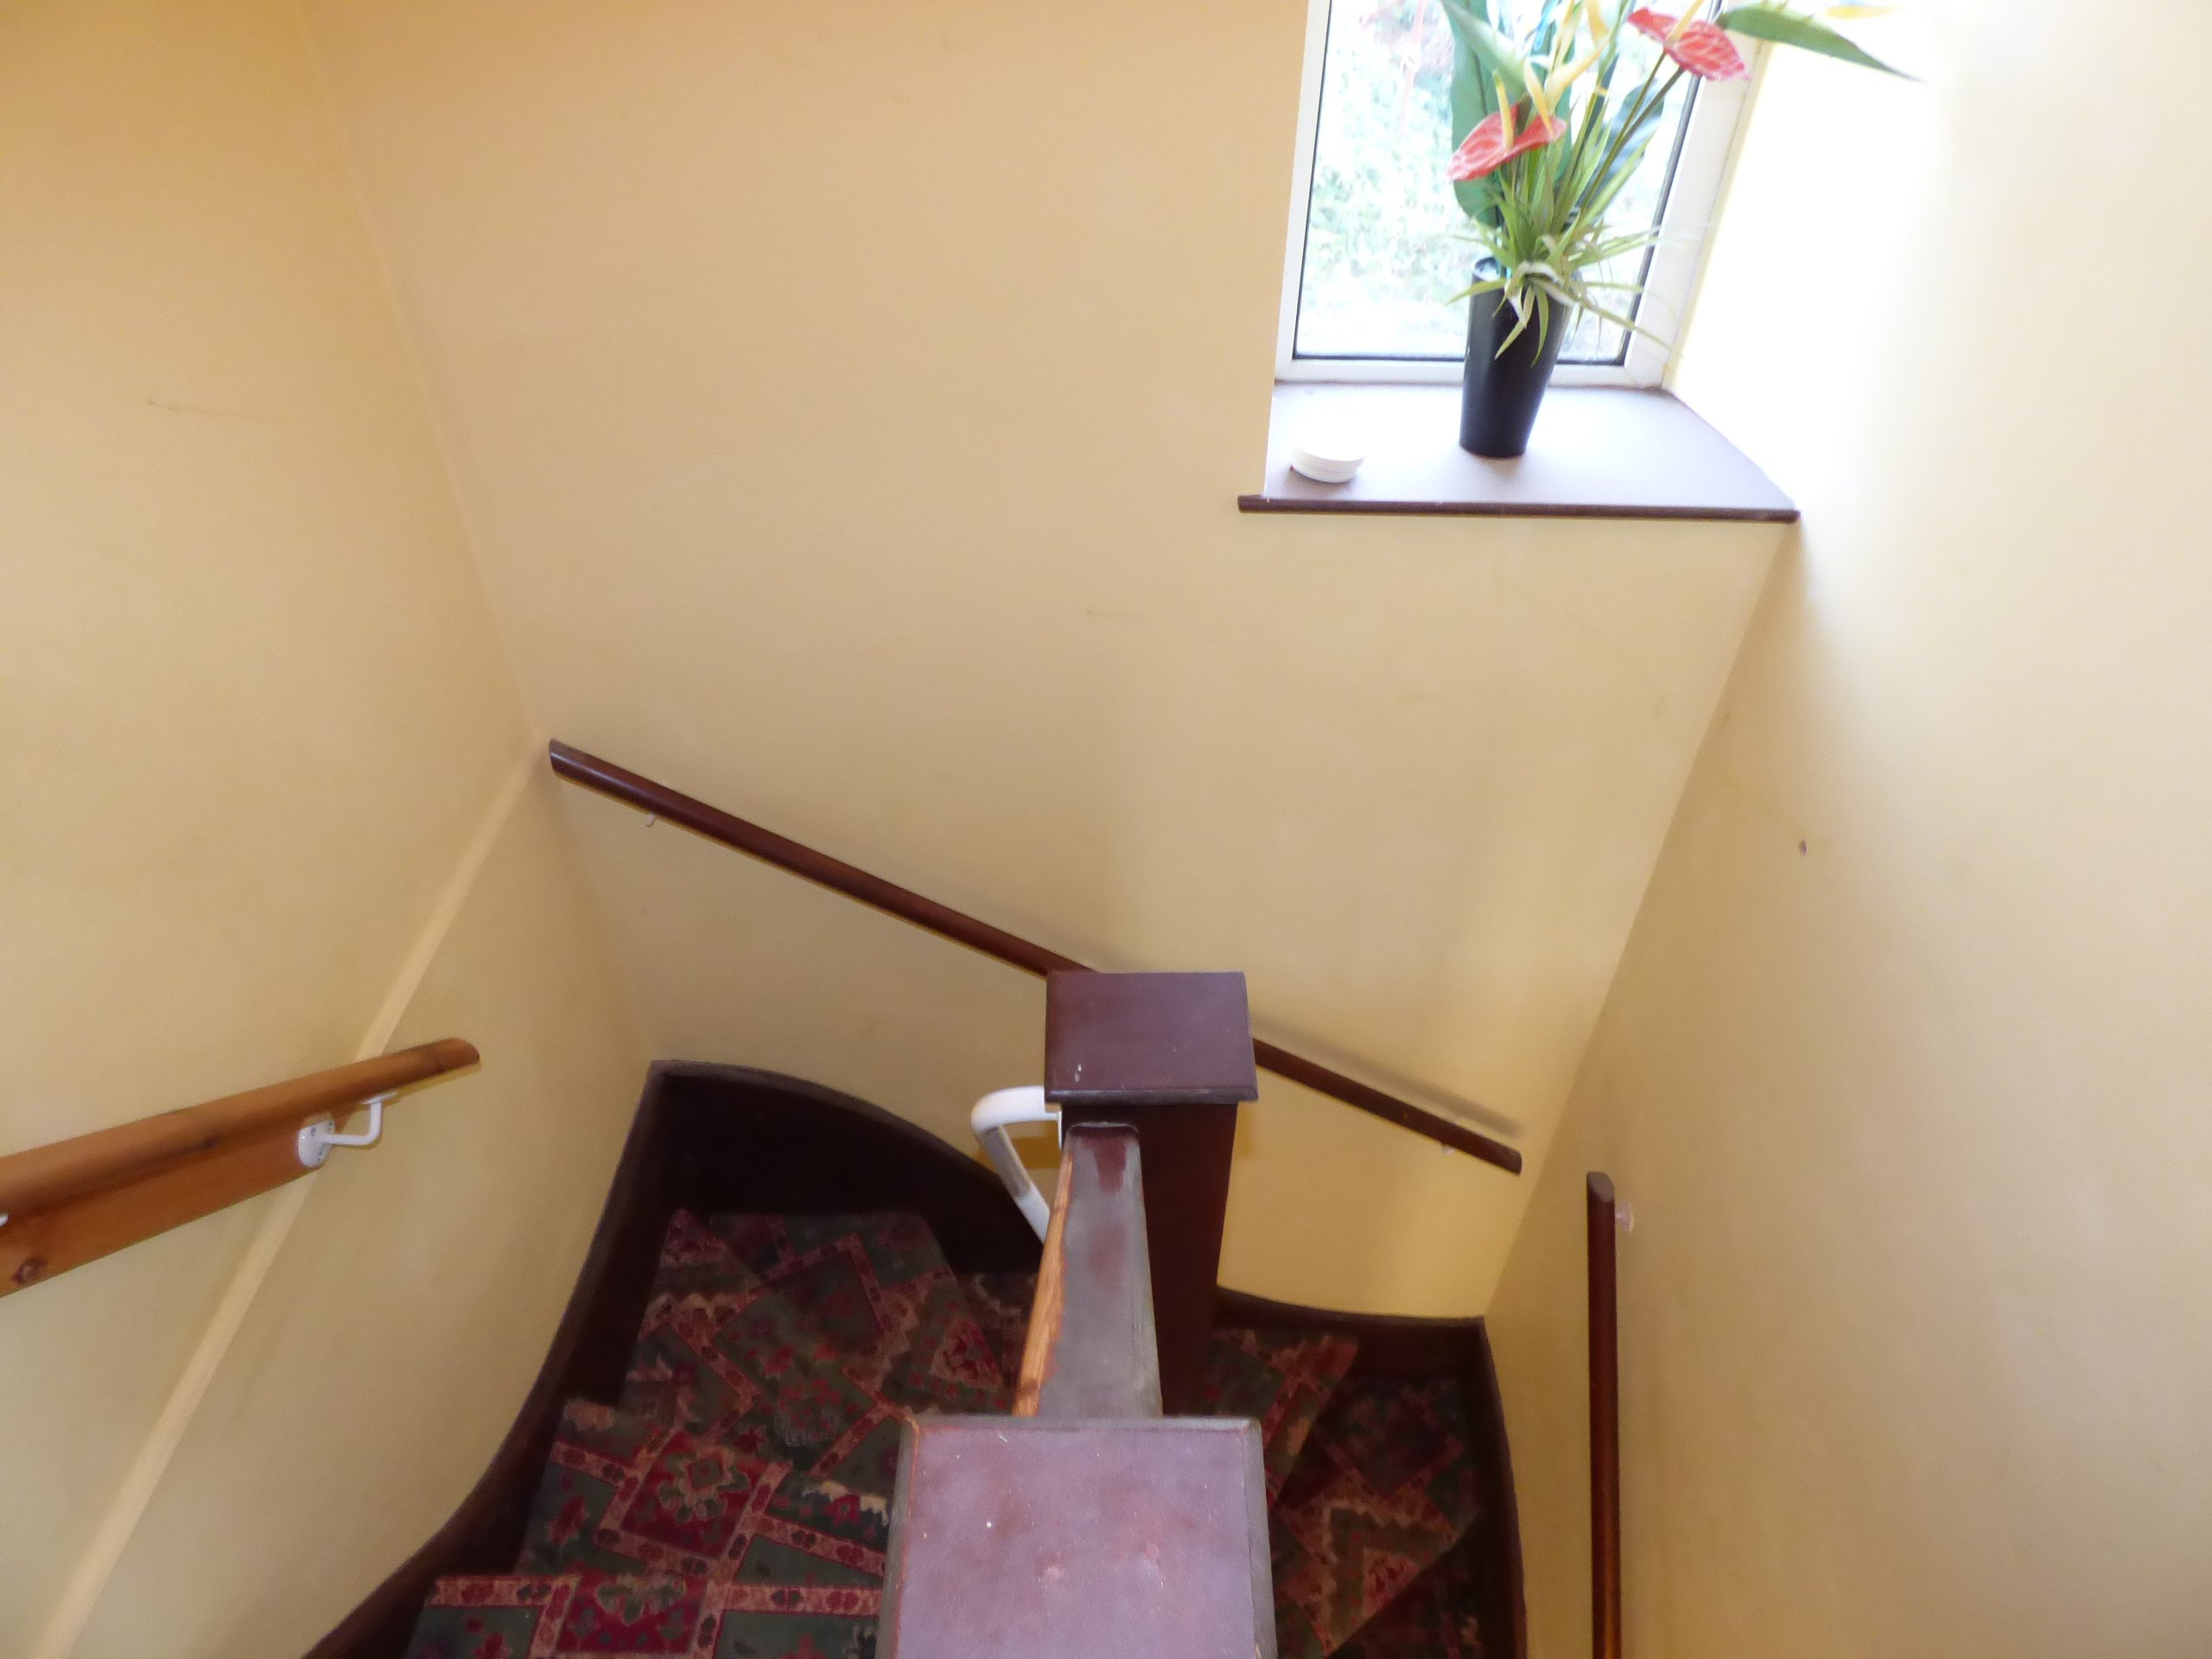 Wisemove Property for sale. Tanybryn House, Pontycymmer. Stairway